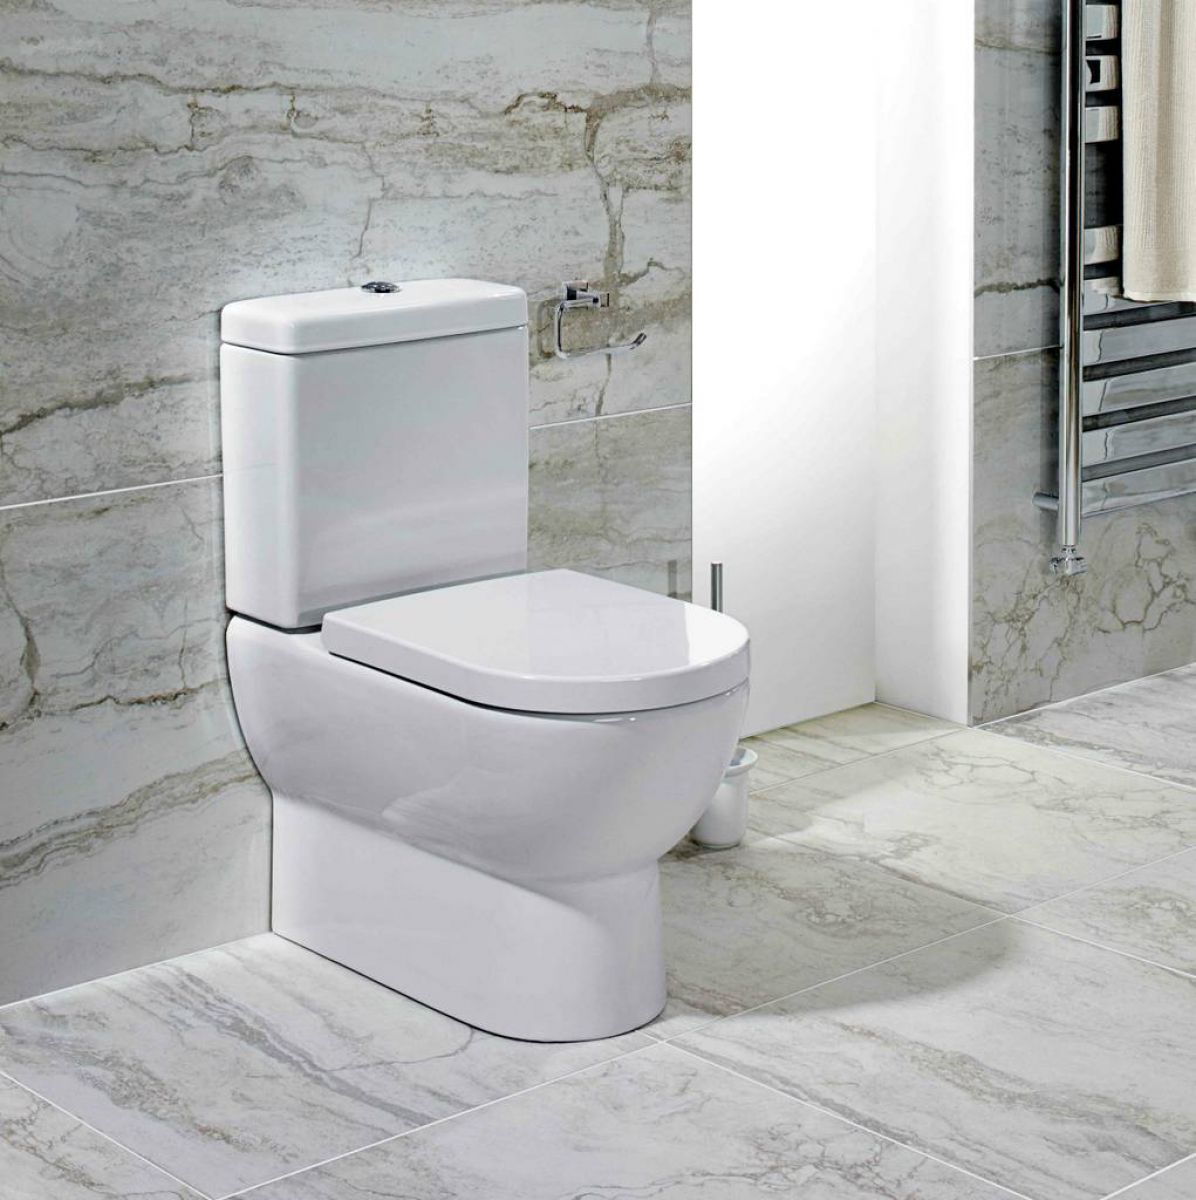 Abacus Simple Flat-to-Wall Close Coupled Toilet : UK Bathrooms